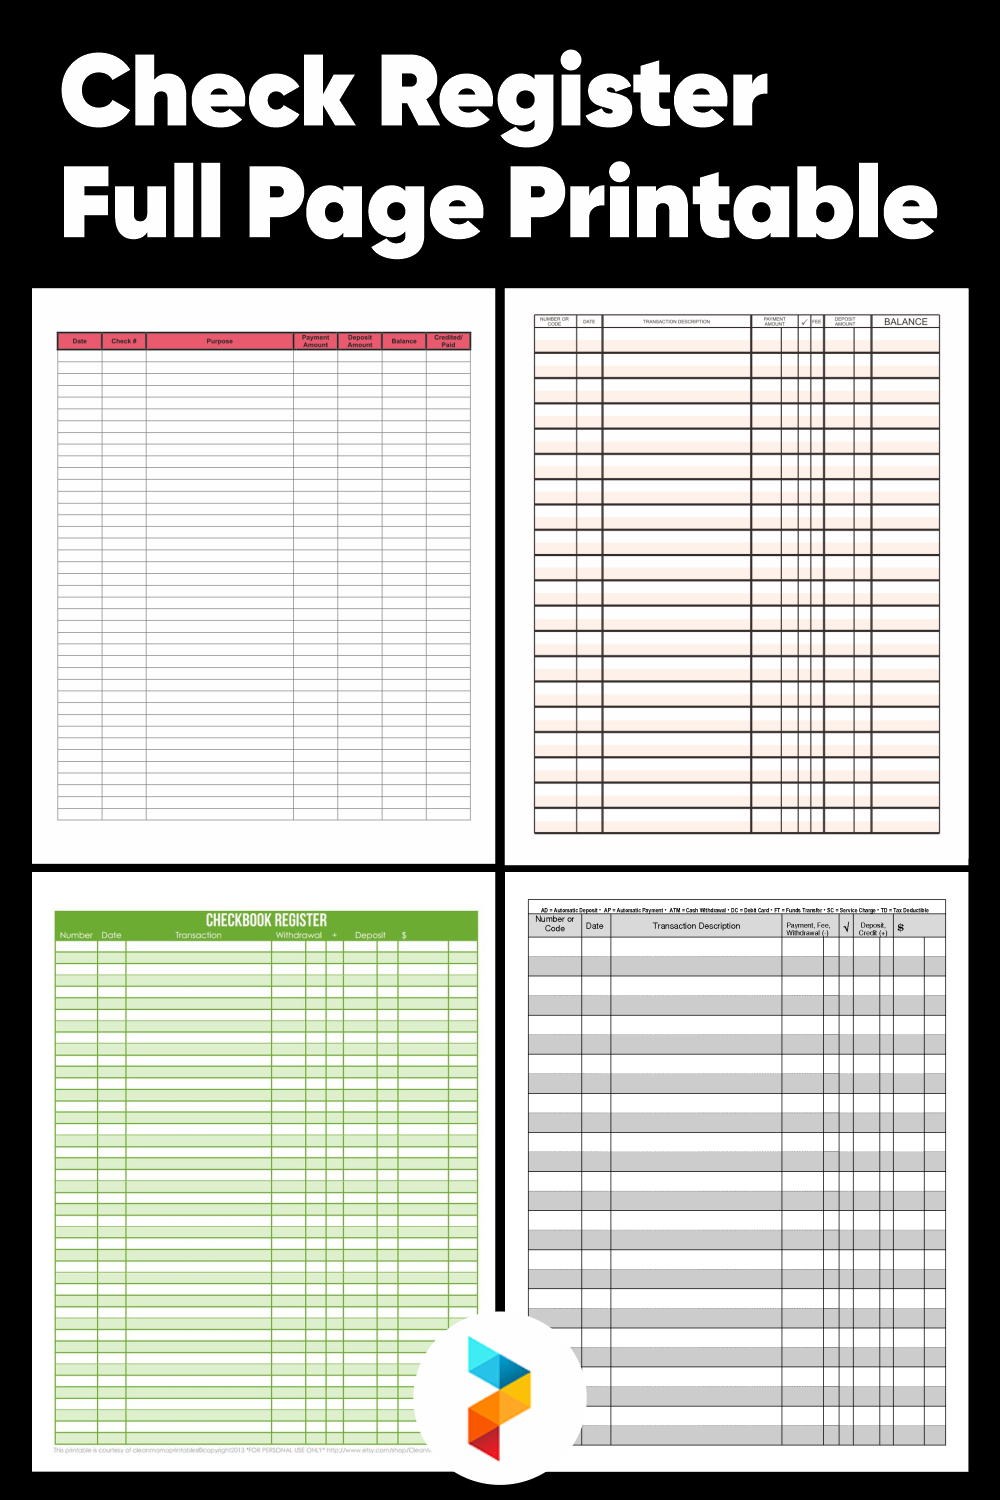 Check Register Full Page Printable